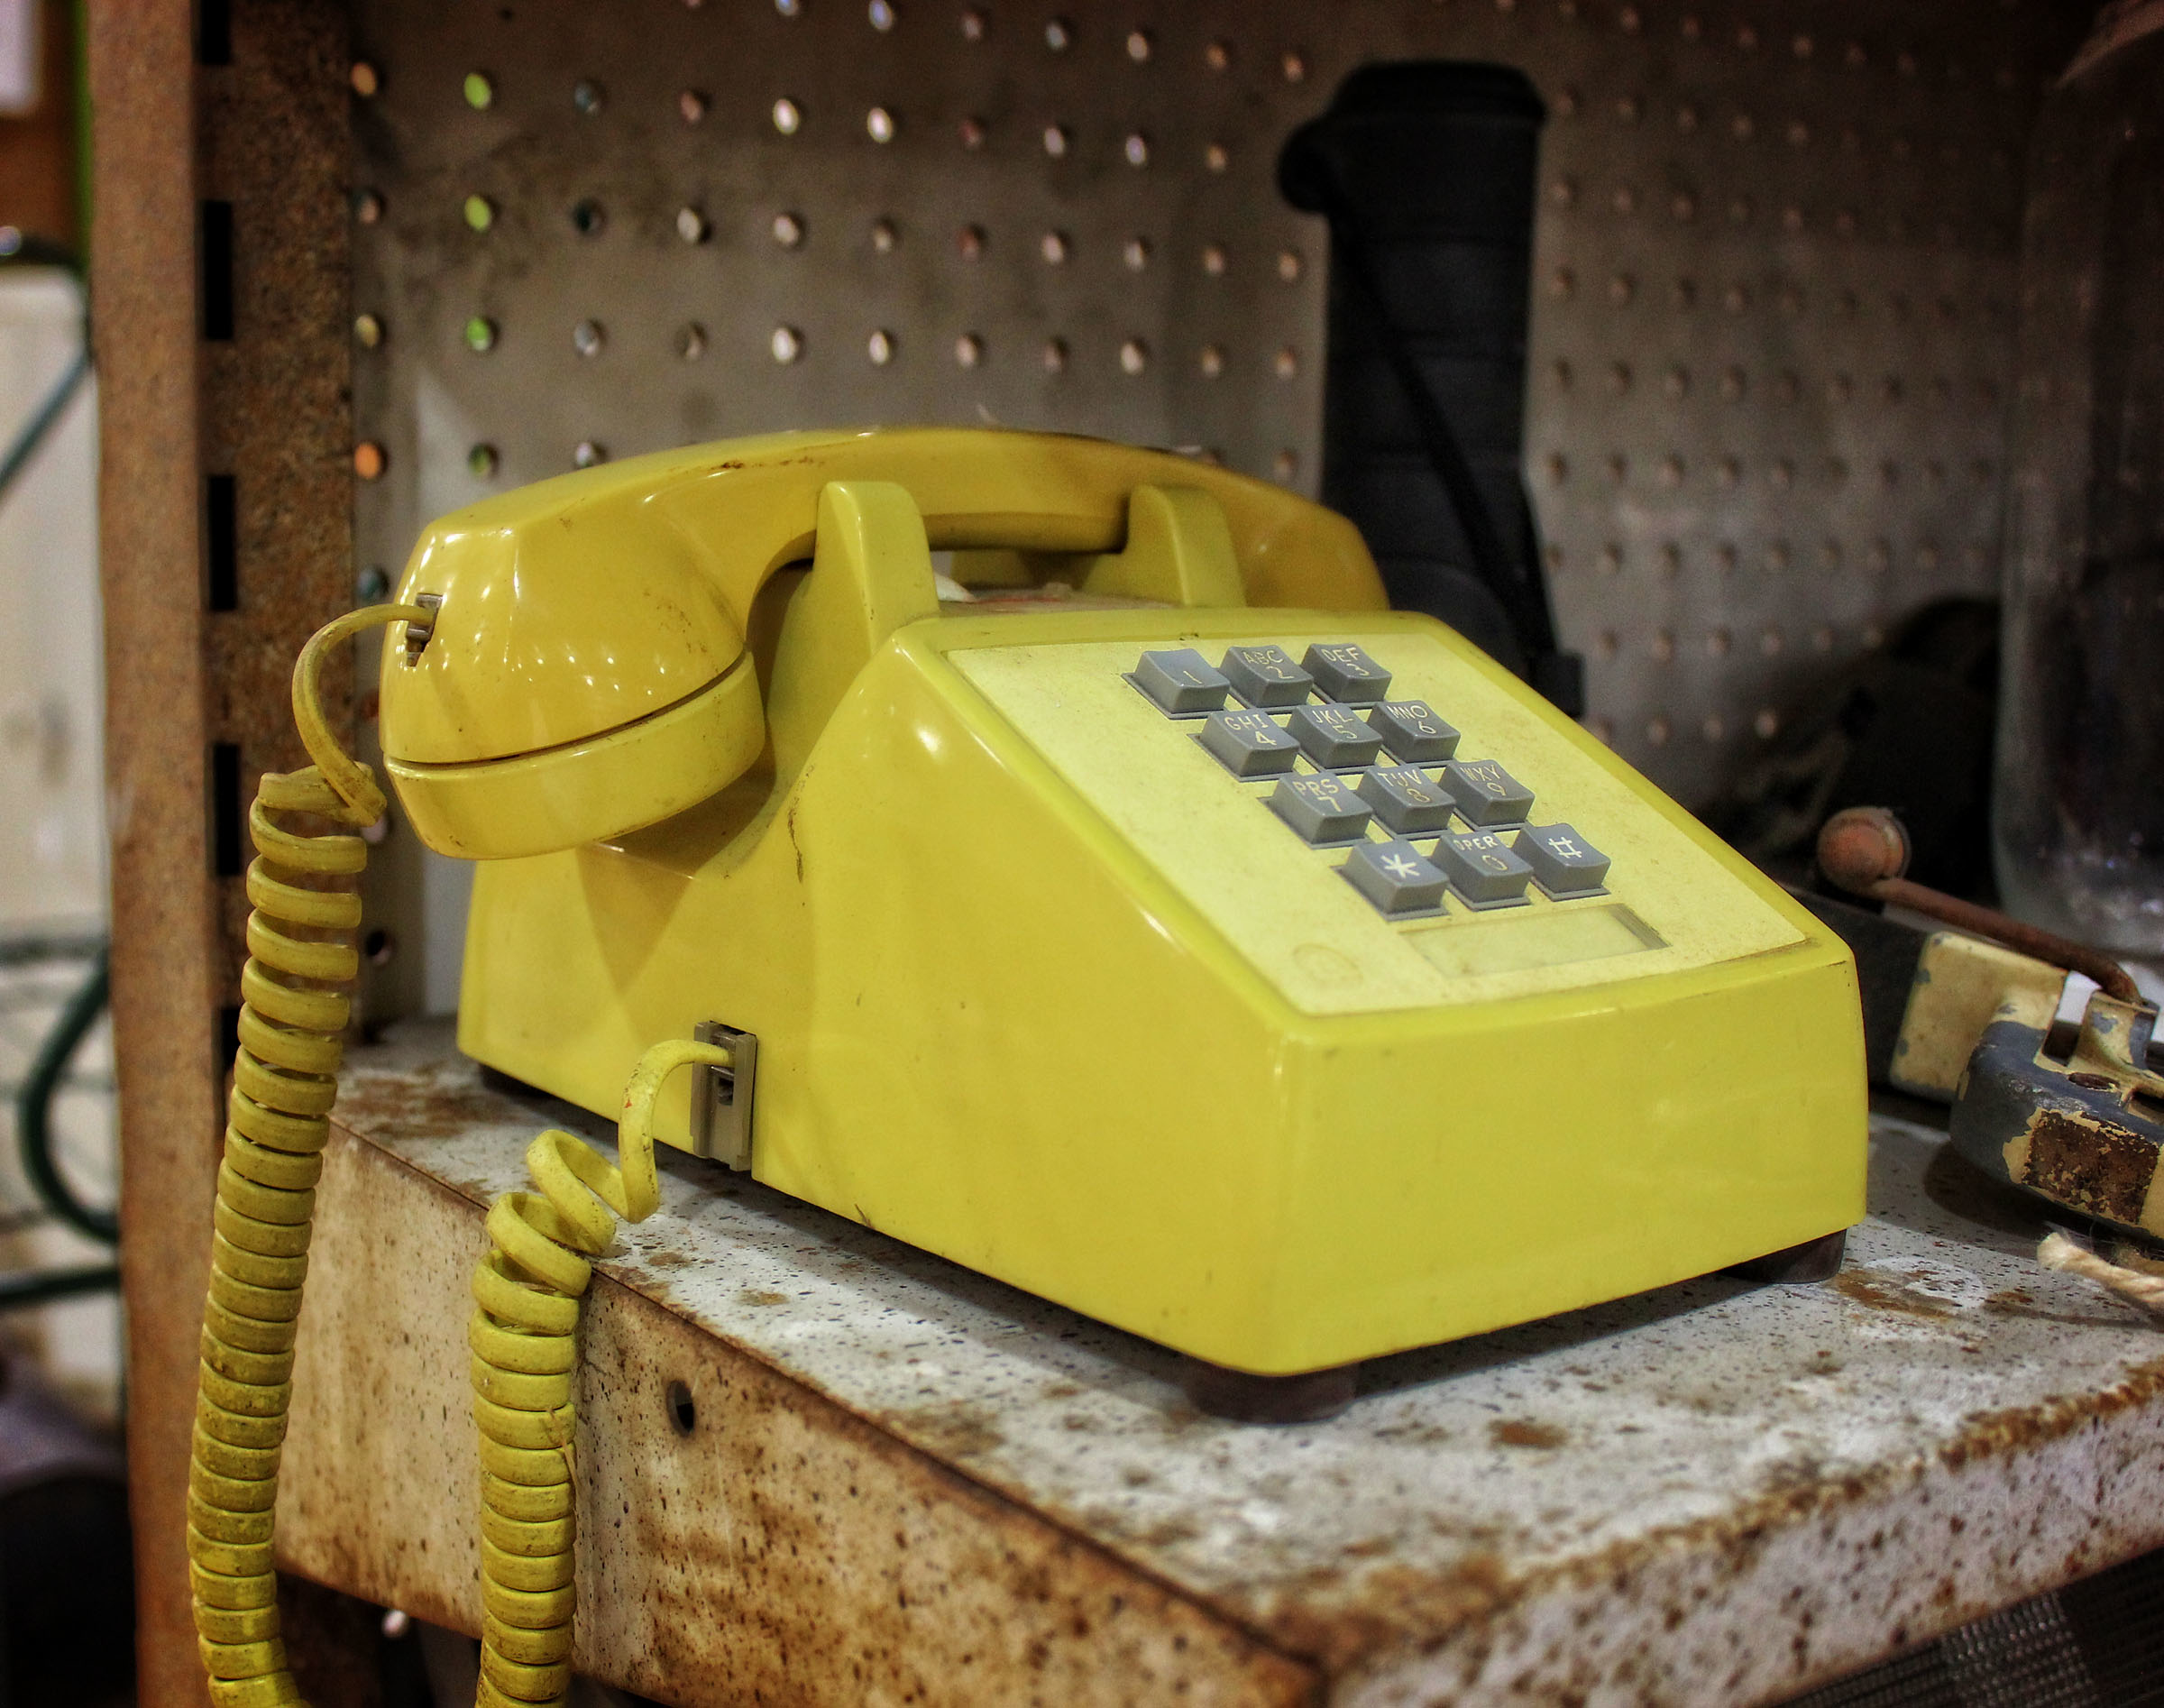 close-up-of-landline-phone-on-tablejpg